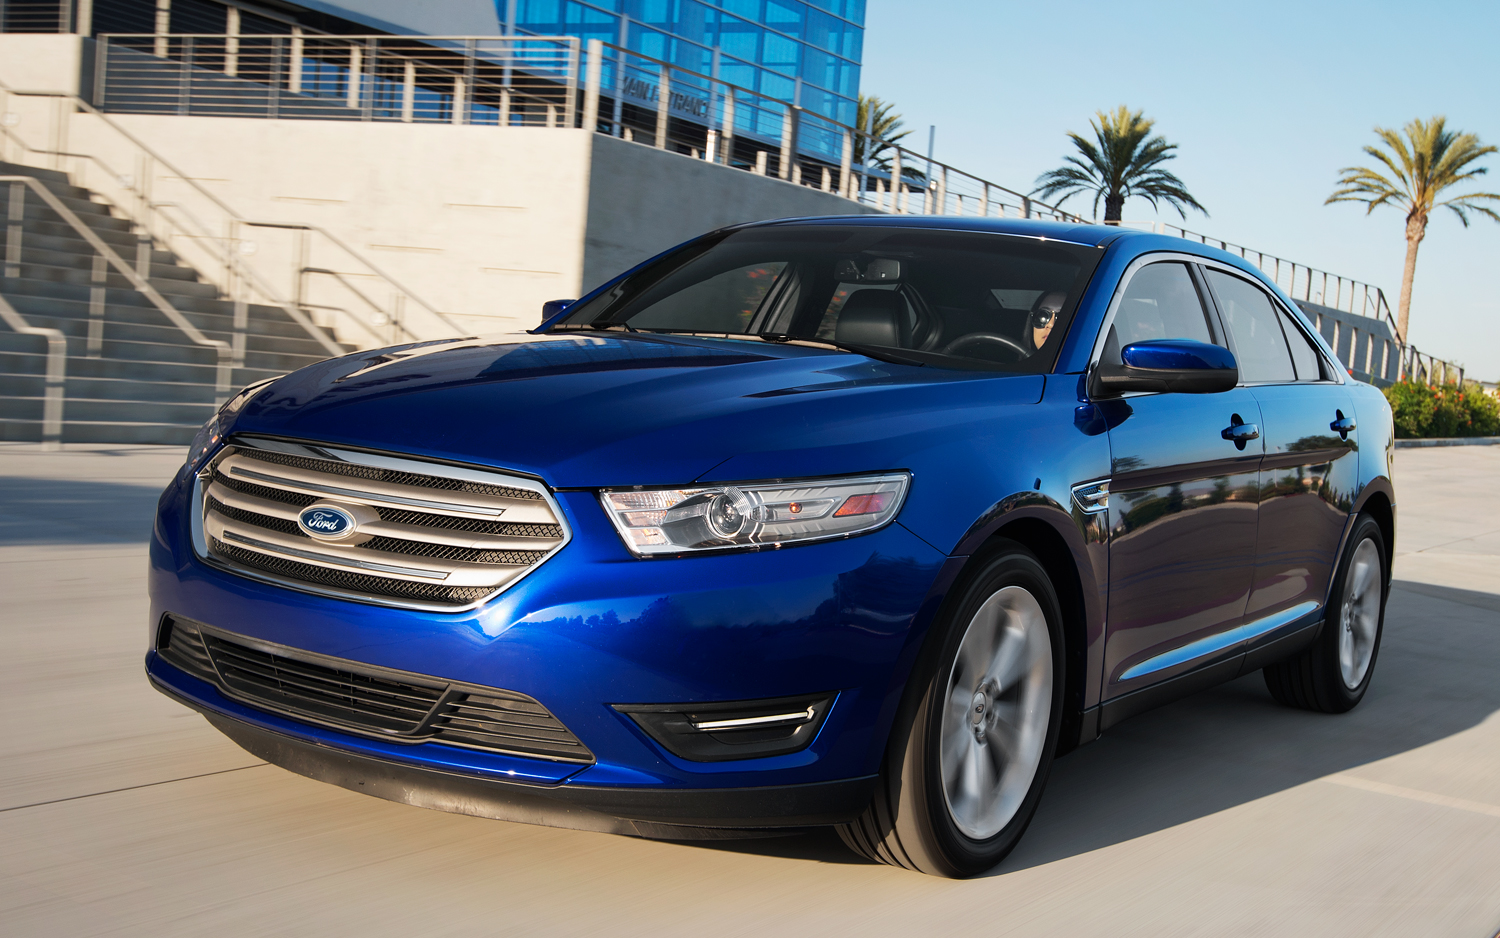 2013 ford taurus sel v-6 front view